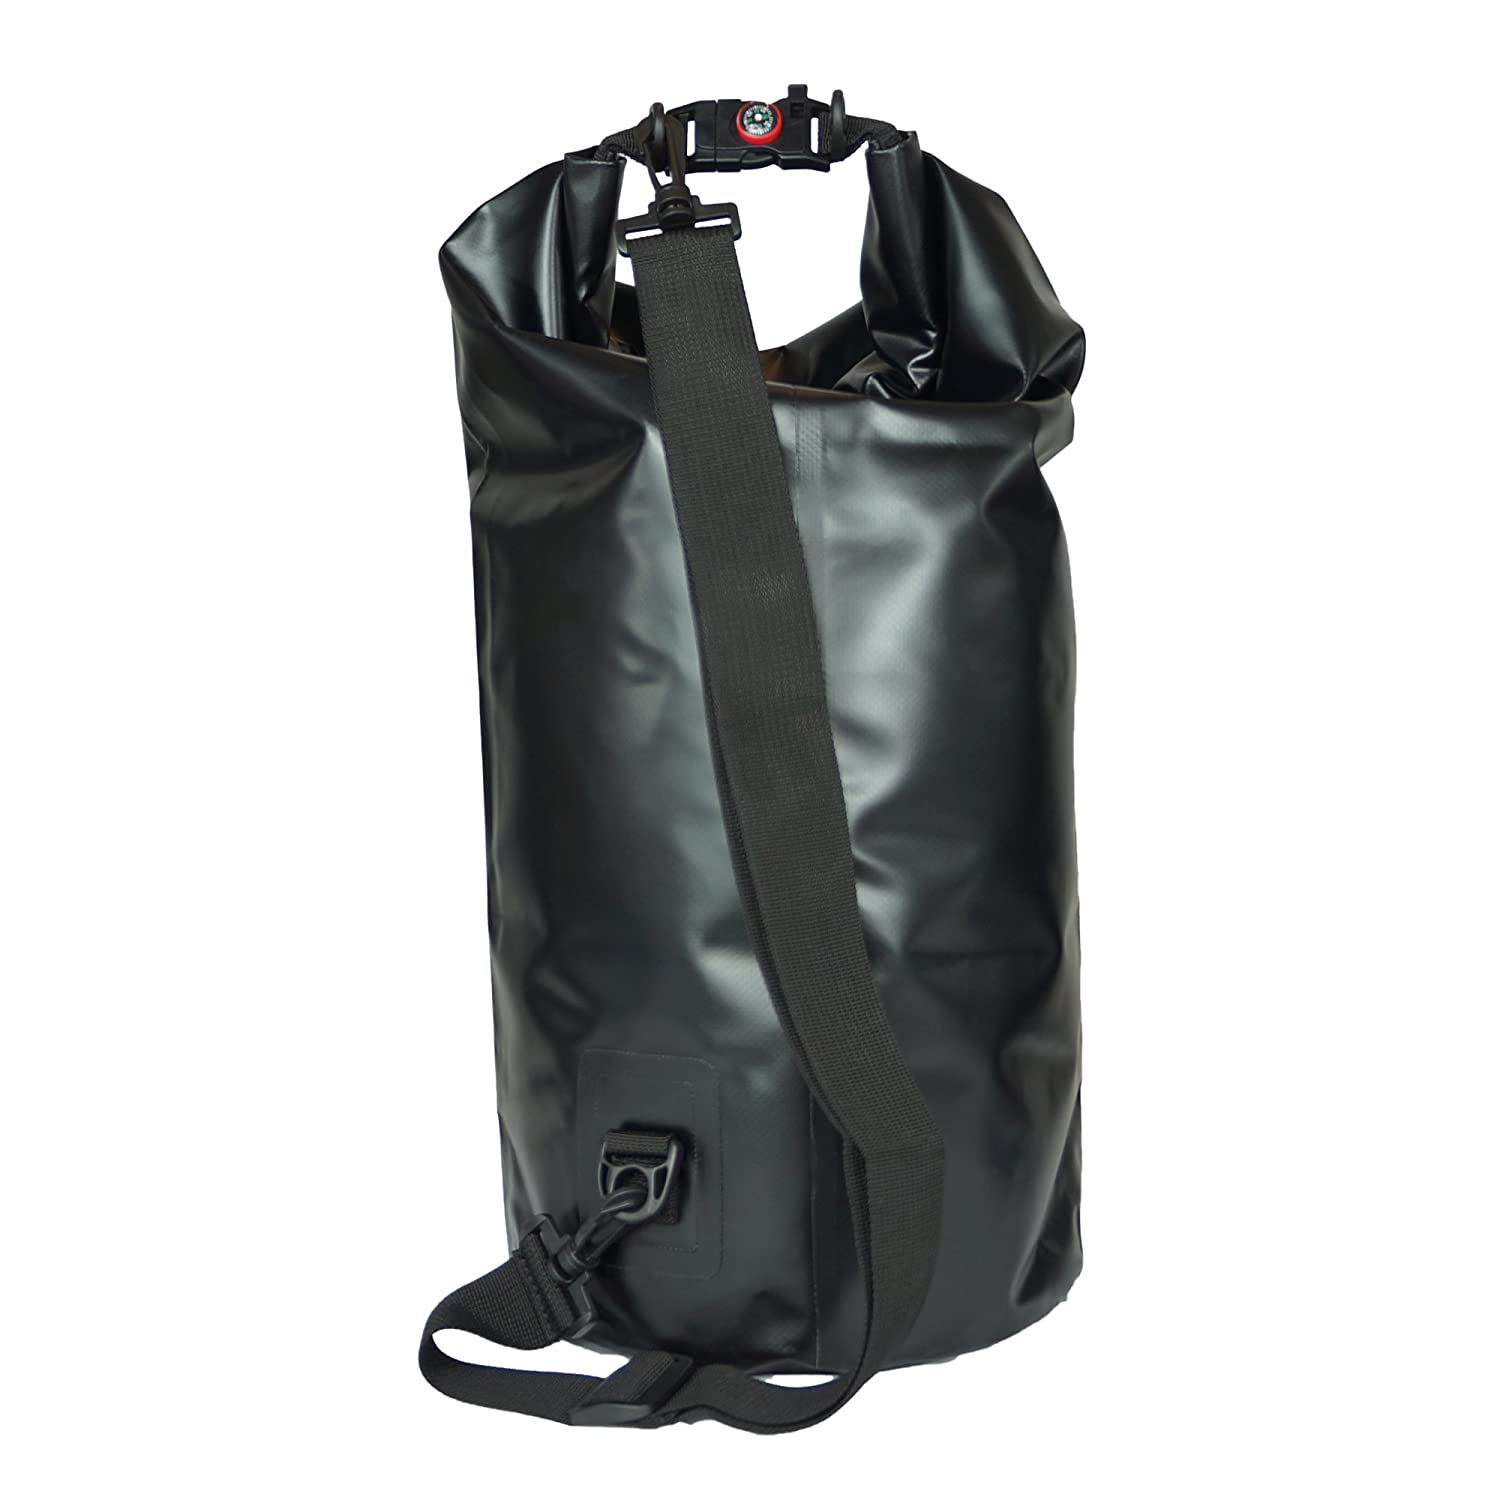 f6fde9f9ad Amazon.com   Ruggedized Dry Bag - LOCKING Professional Series - 100%  Waterproof and Submersible - 2018 Made in USA   Sports   Outdoors